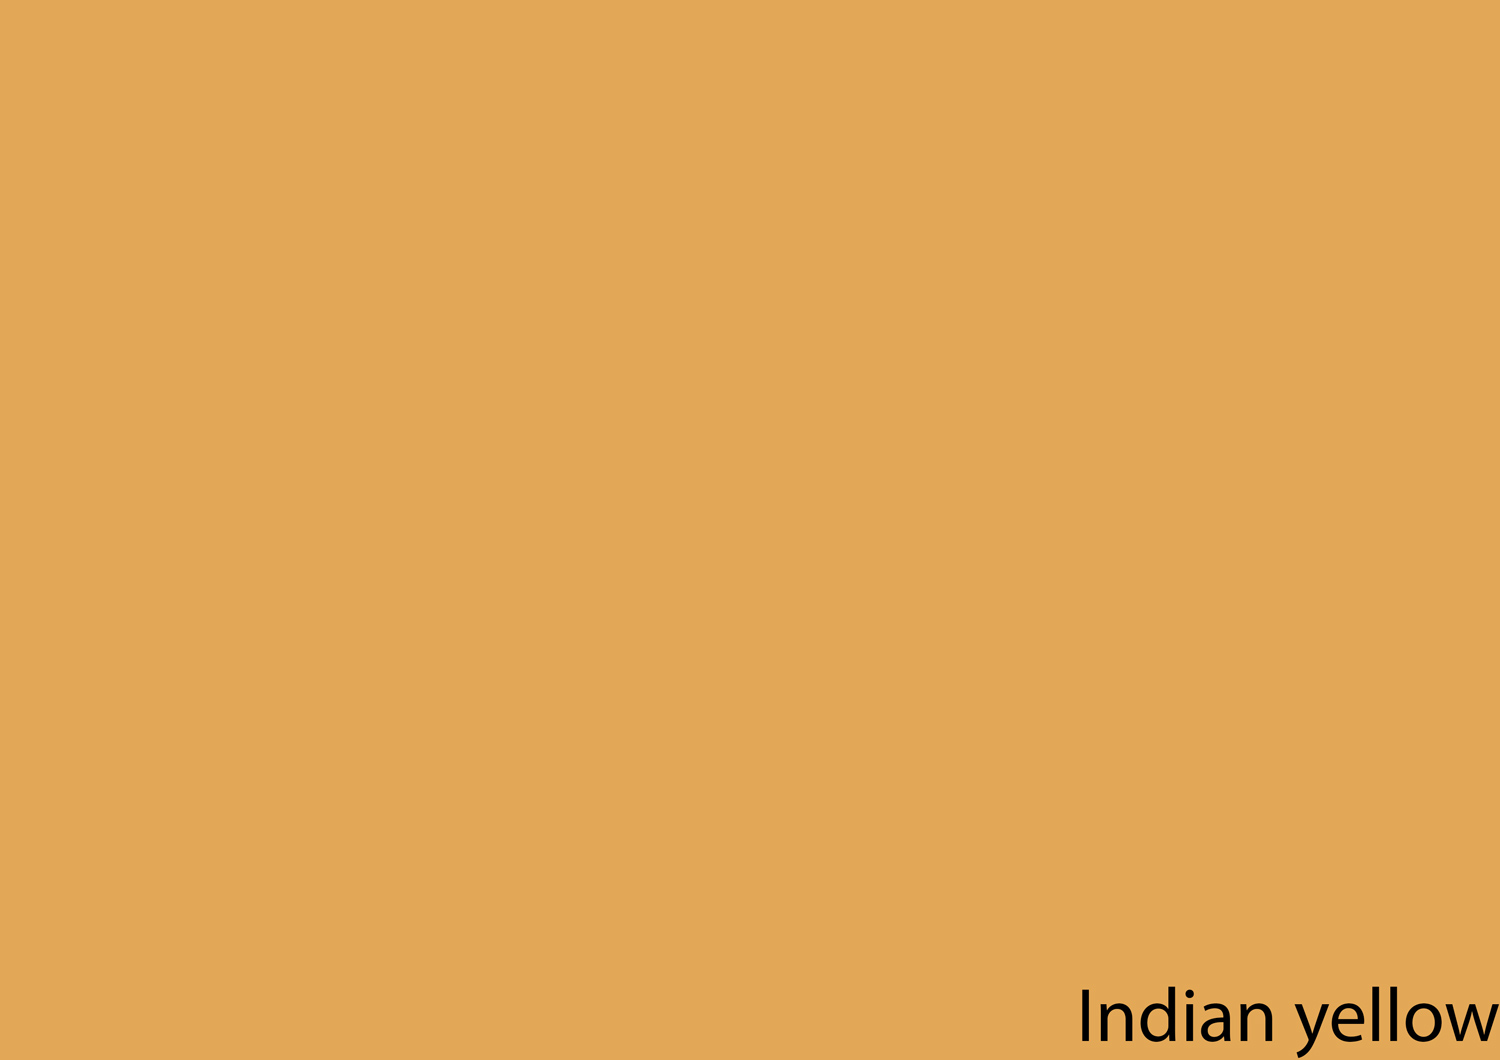 https://i1.wp.com/digital-photography-school.com/wp-content/uploads/2019/03/indian-yellow.jpg?resize=1500%2C1060&ssl=1